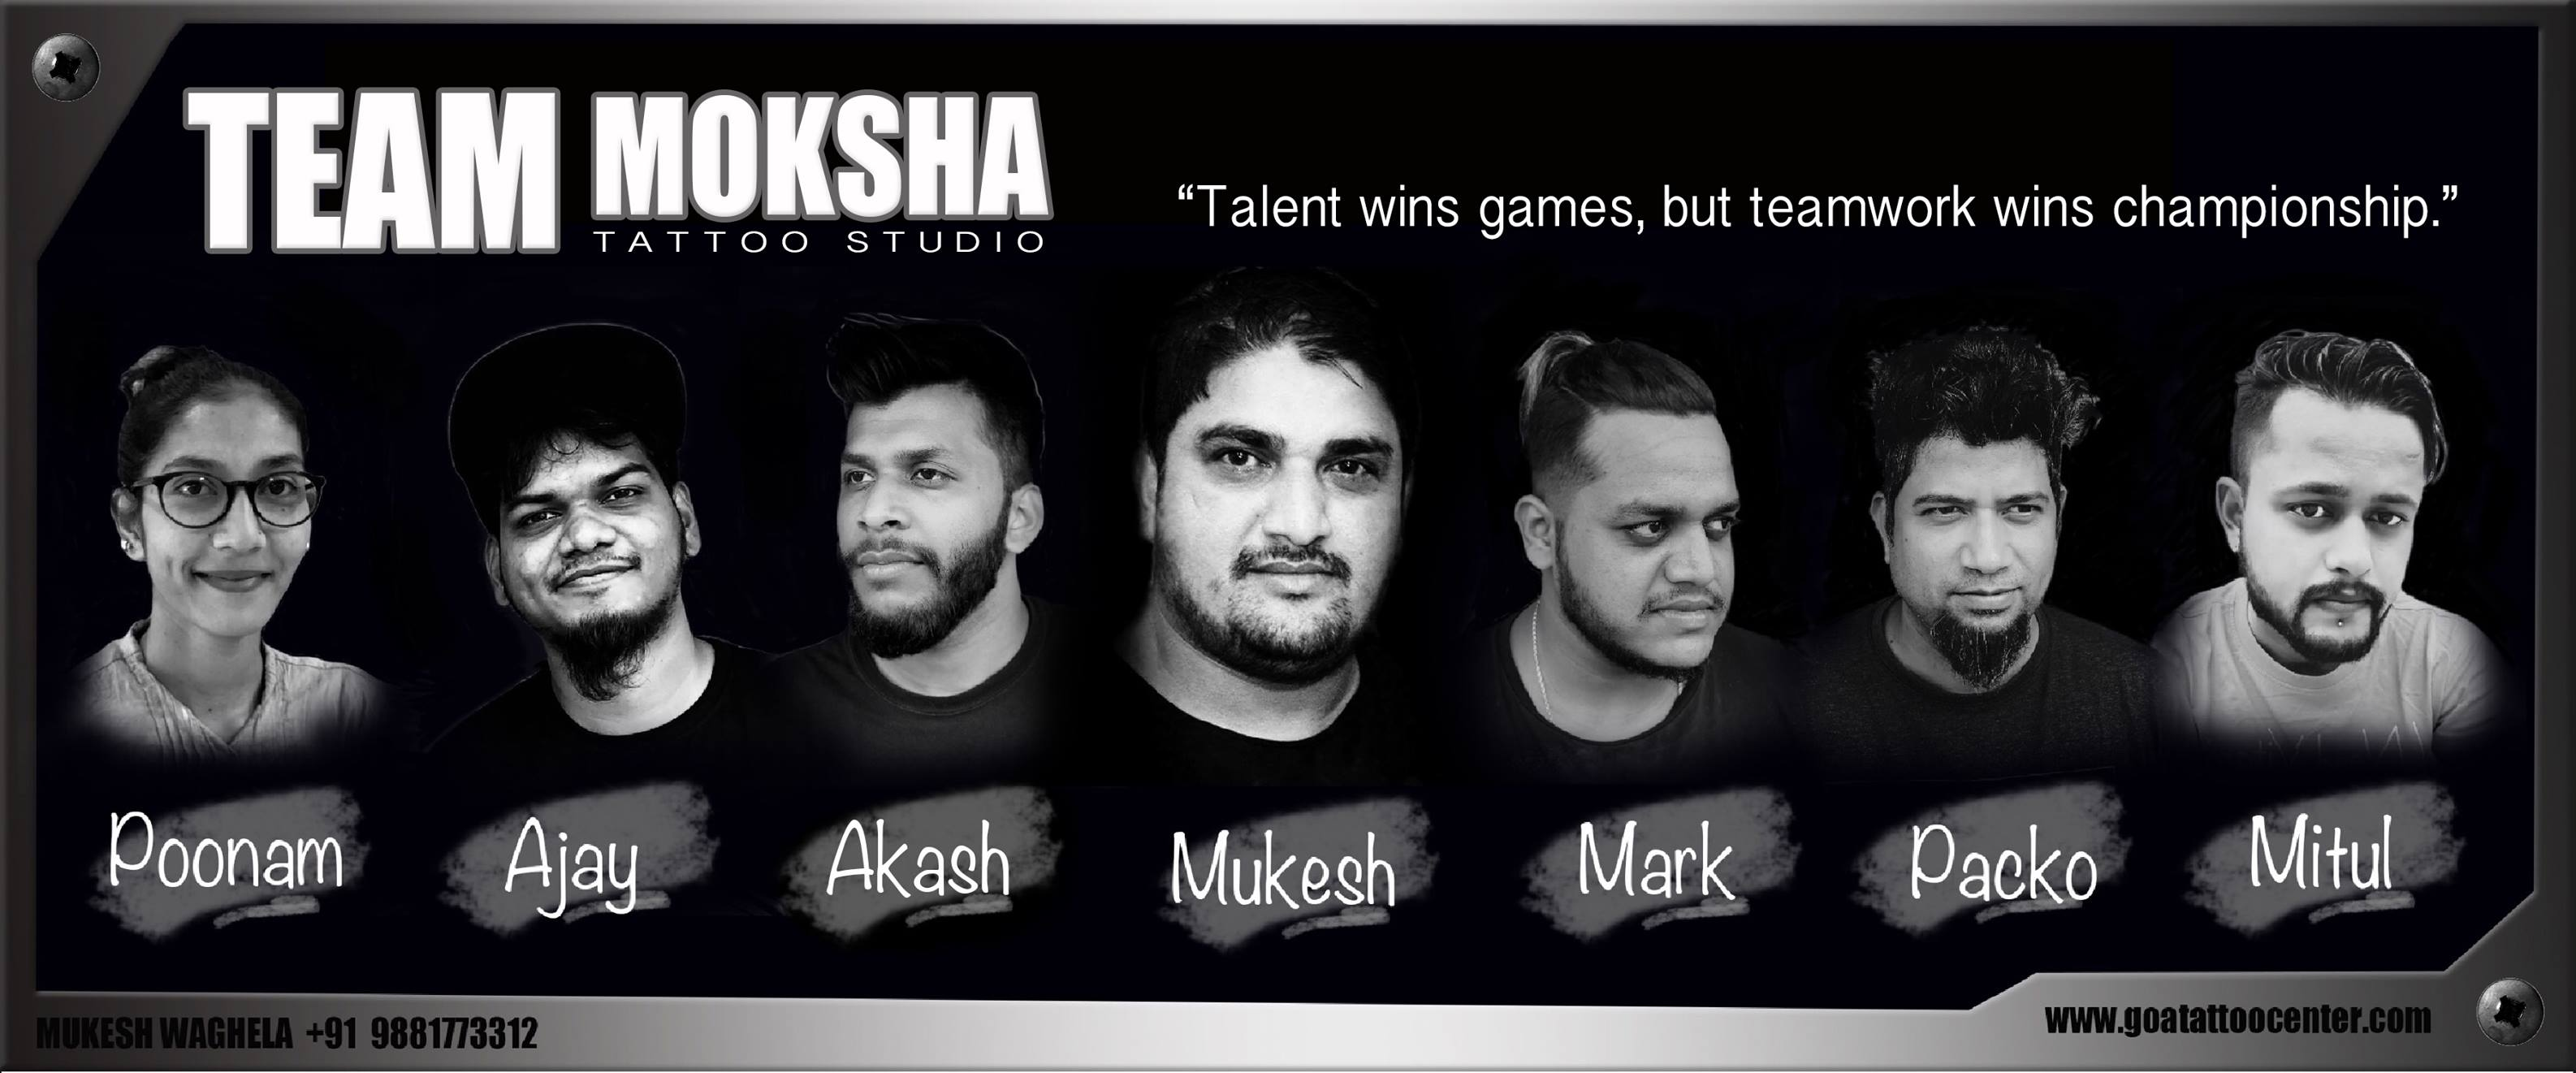 Team-of-Moksha-Tattoo-Studio-based-in-Goa-India